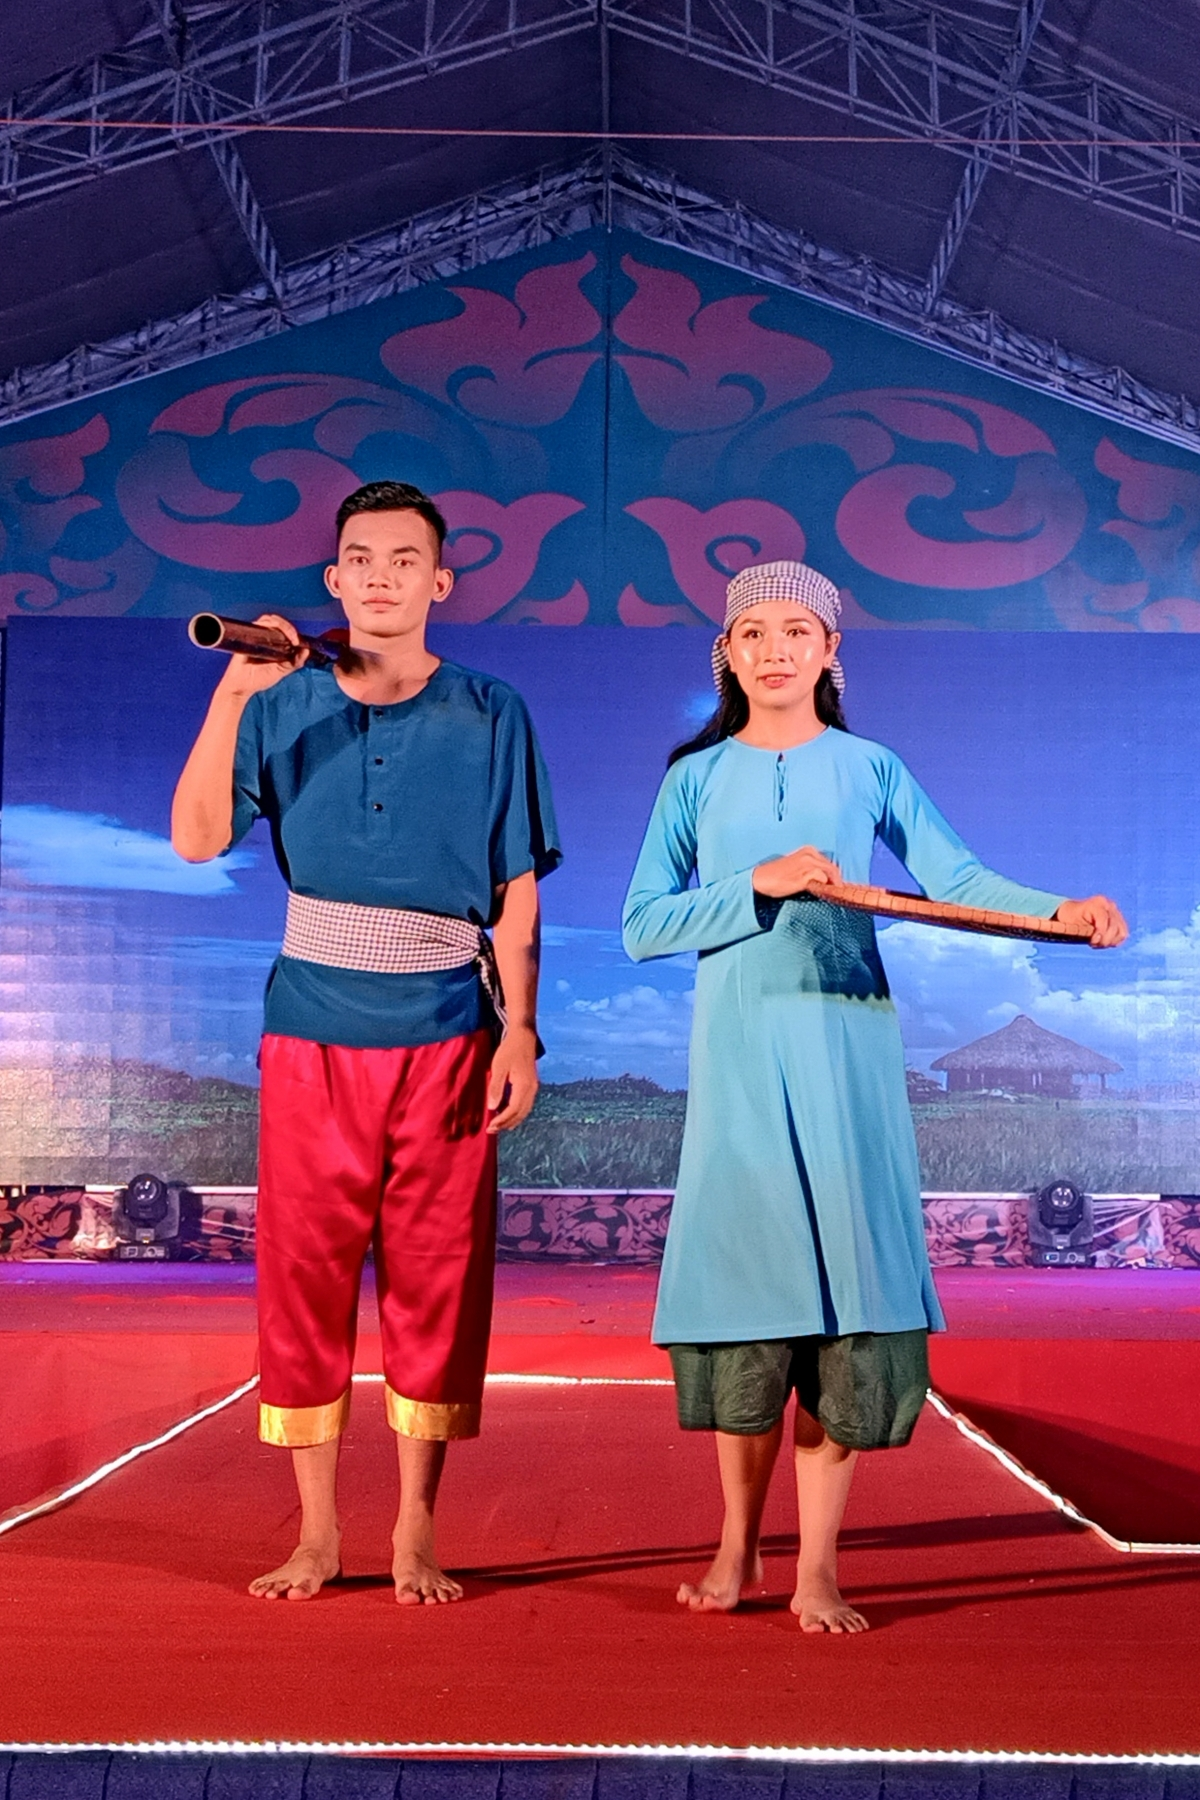 The fashion show offers audiences the chance of viewing a wide range of Khmer outfits, including those worn at work or during celebrations.